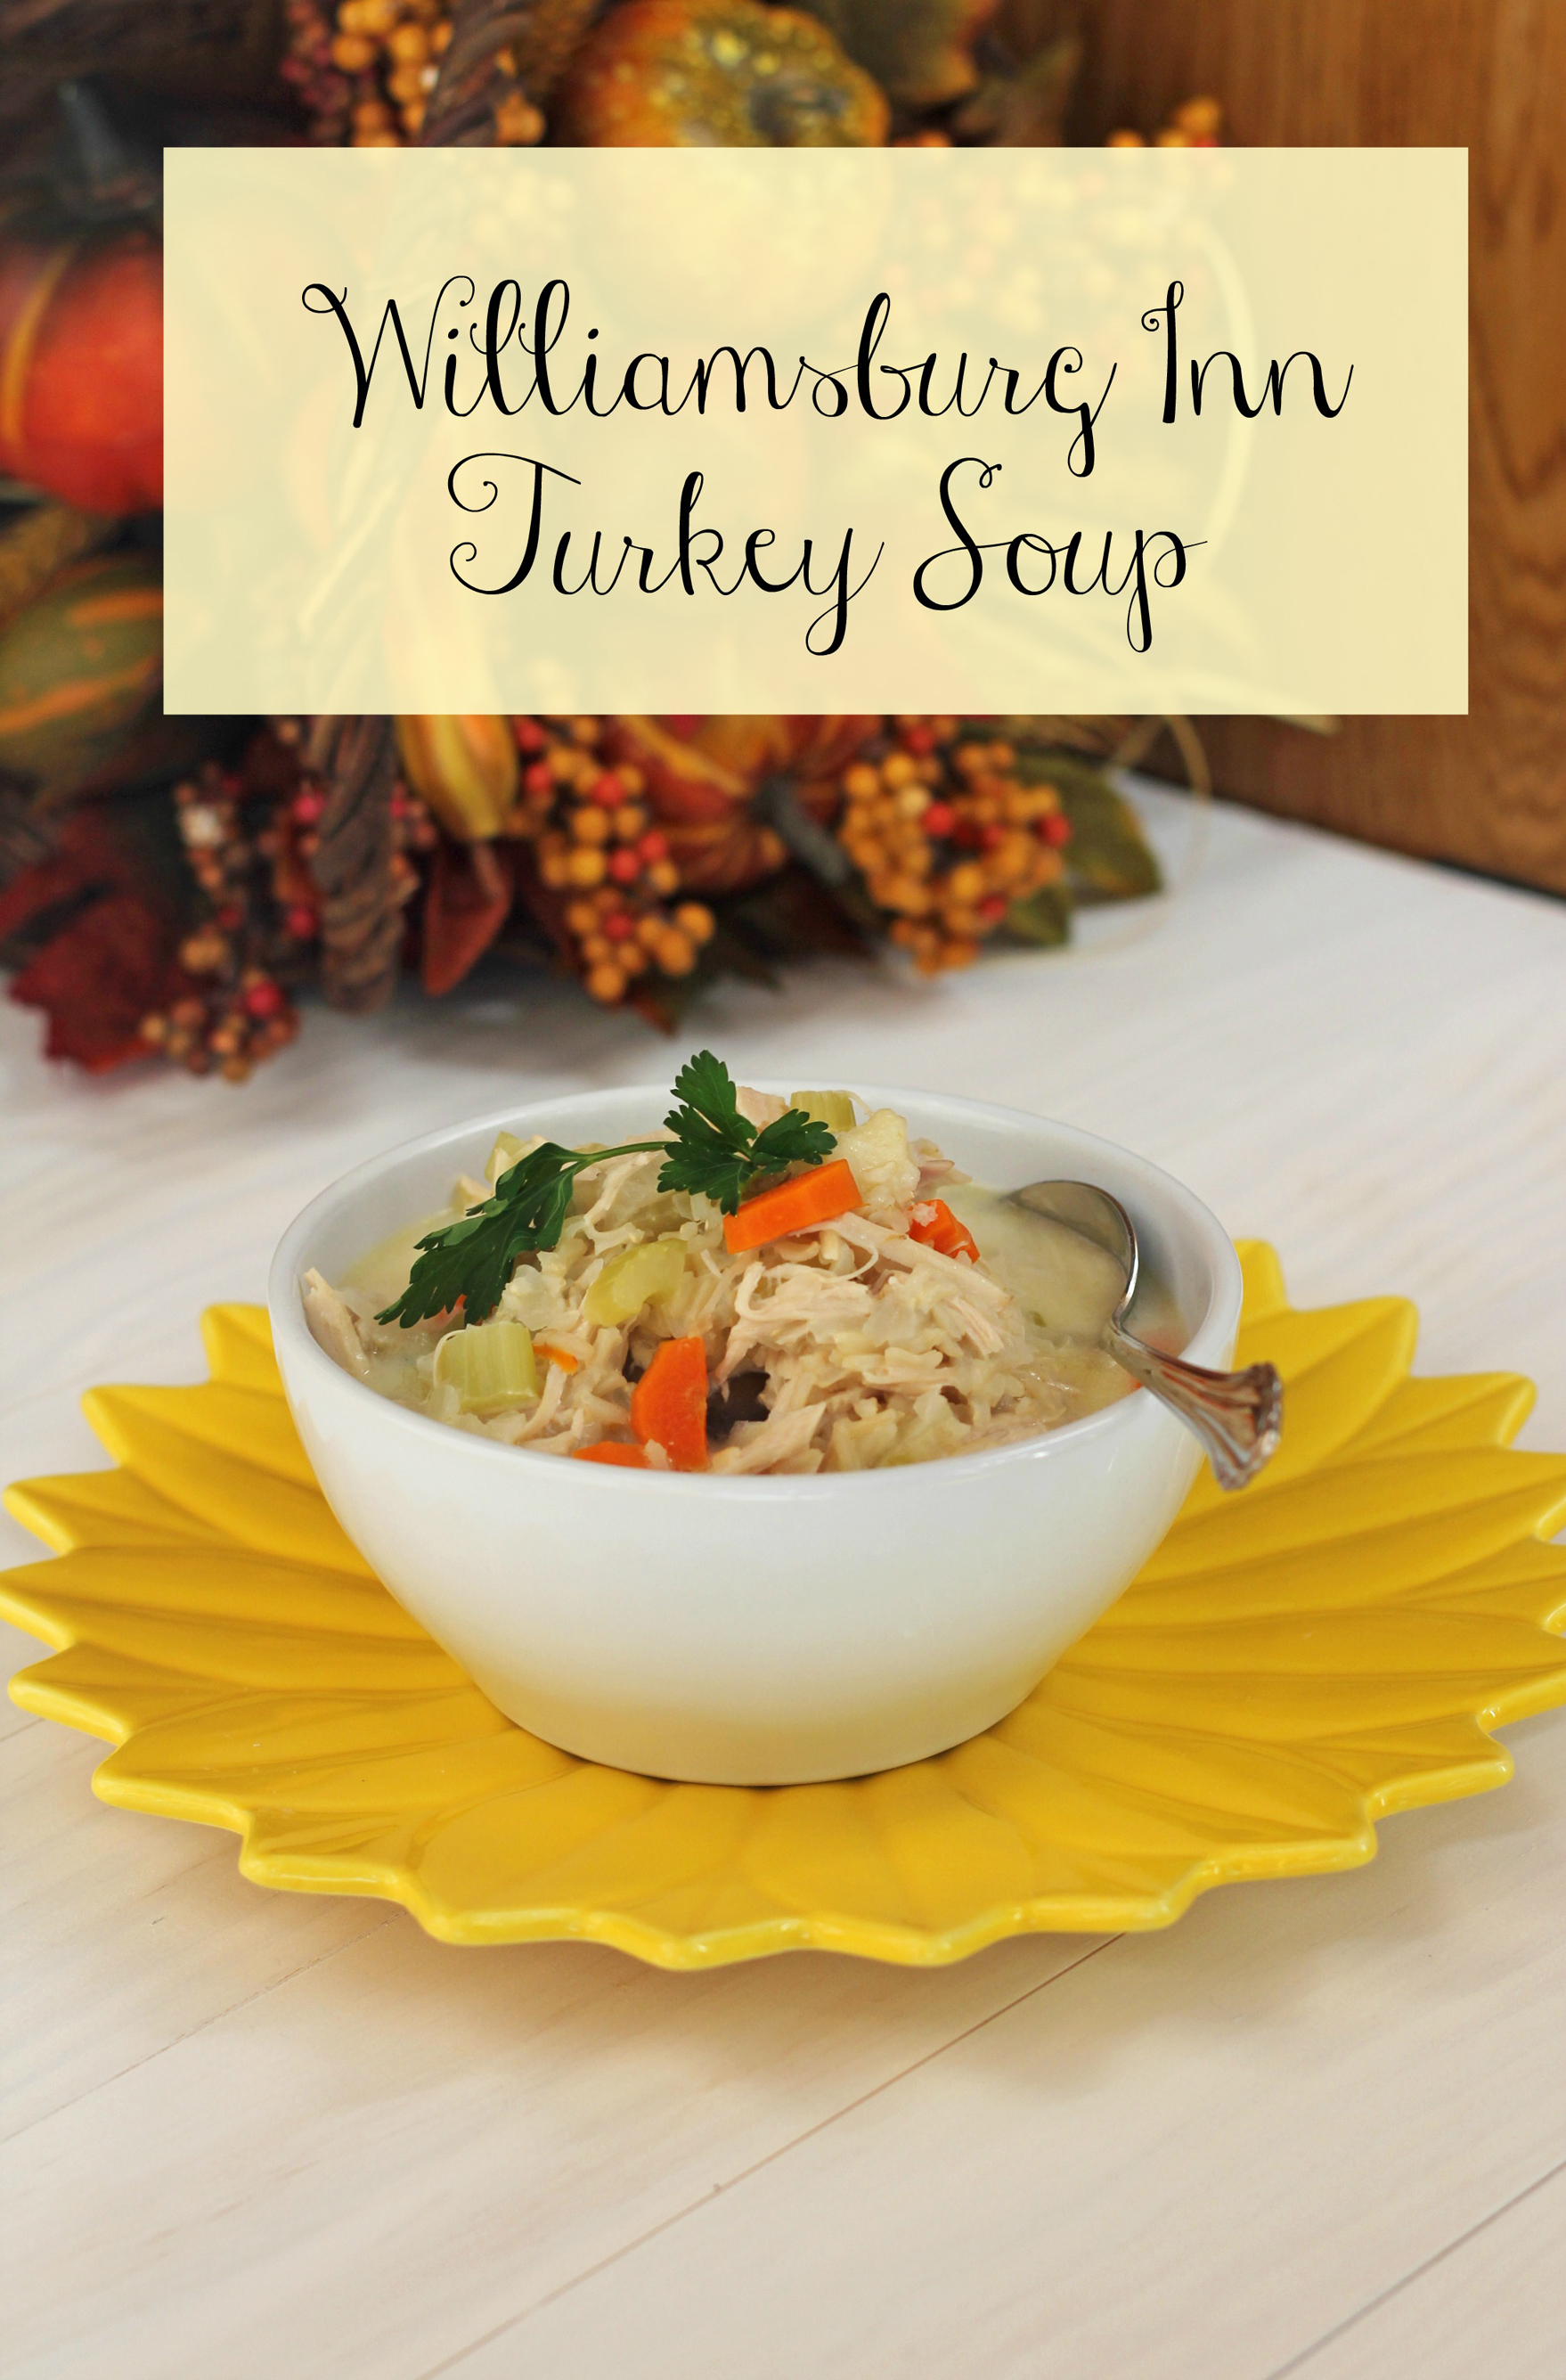 Williamsburg Inn Turkey Soup